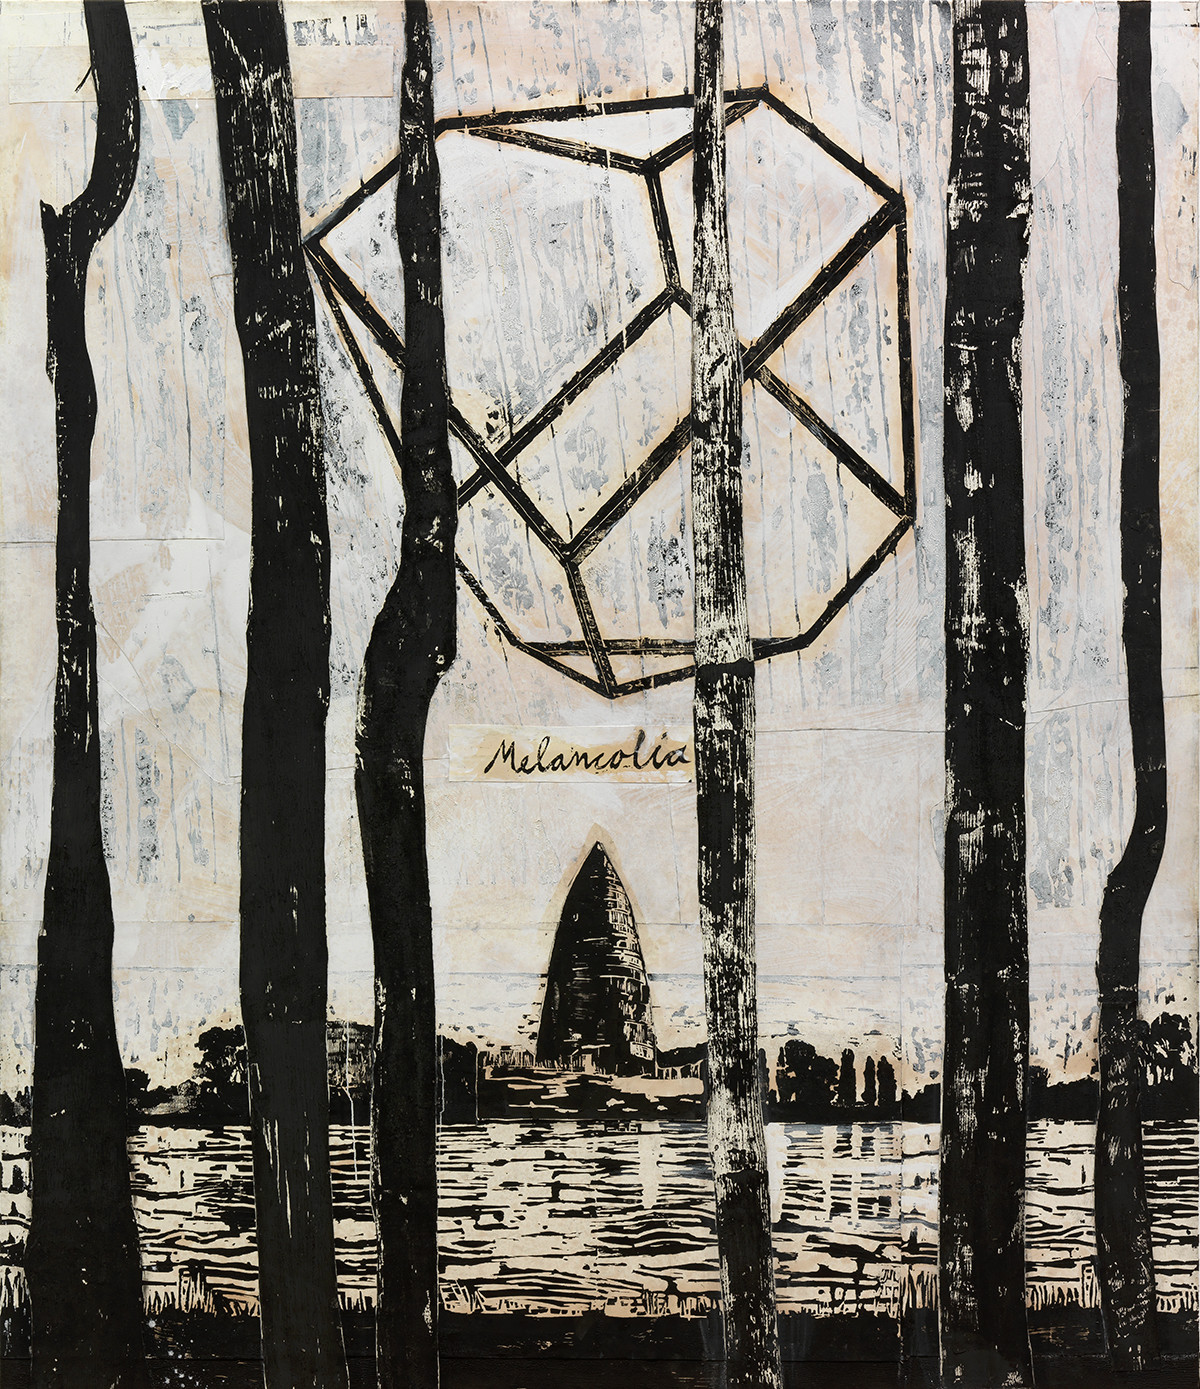 Anselm Kiefer, The Rhine (Melancholia), 1982-2013, collage of woodcut on canvas